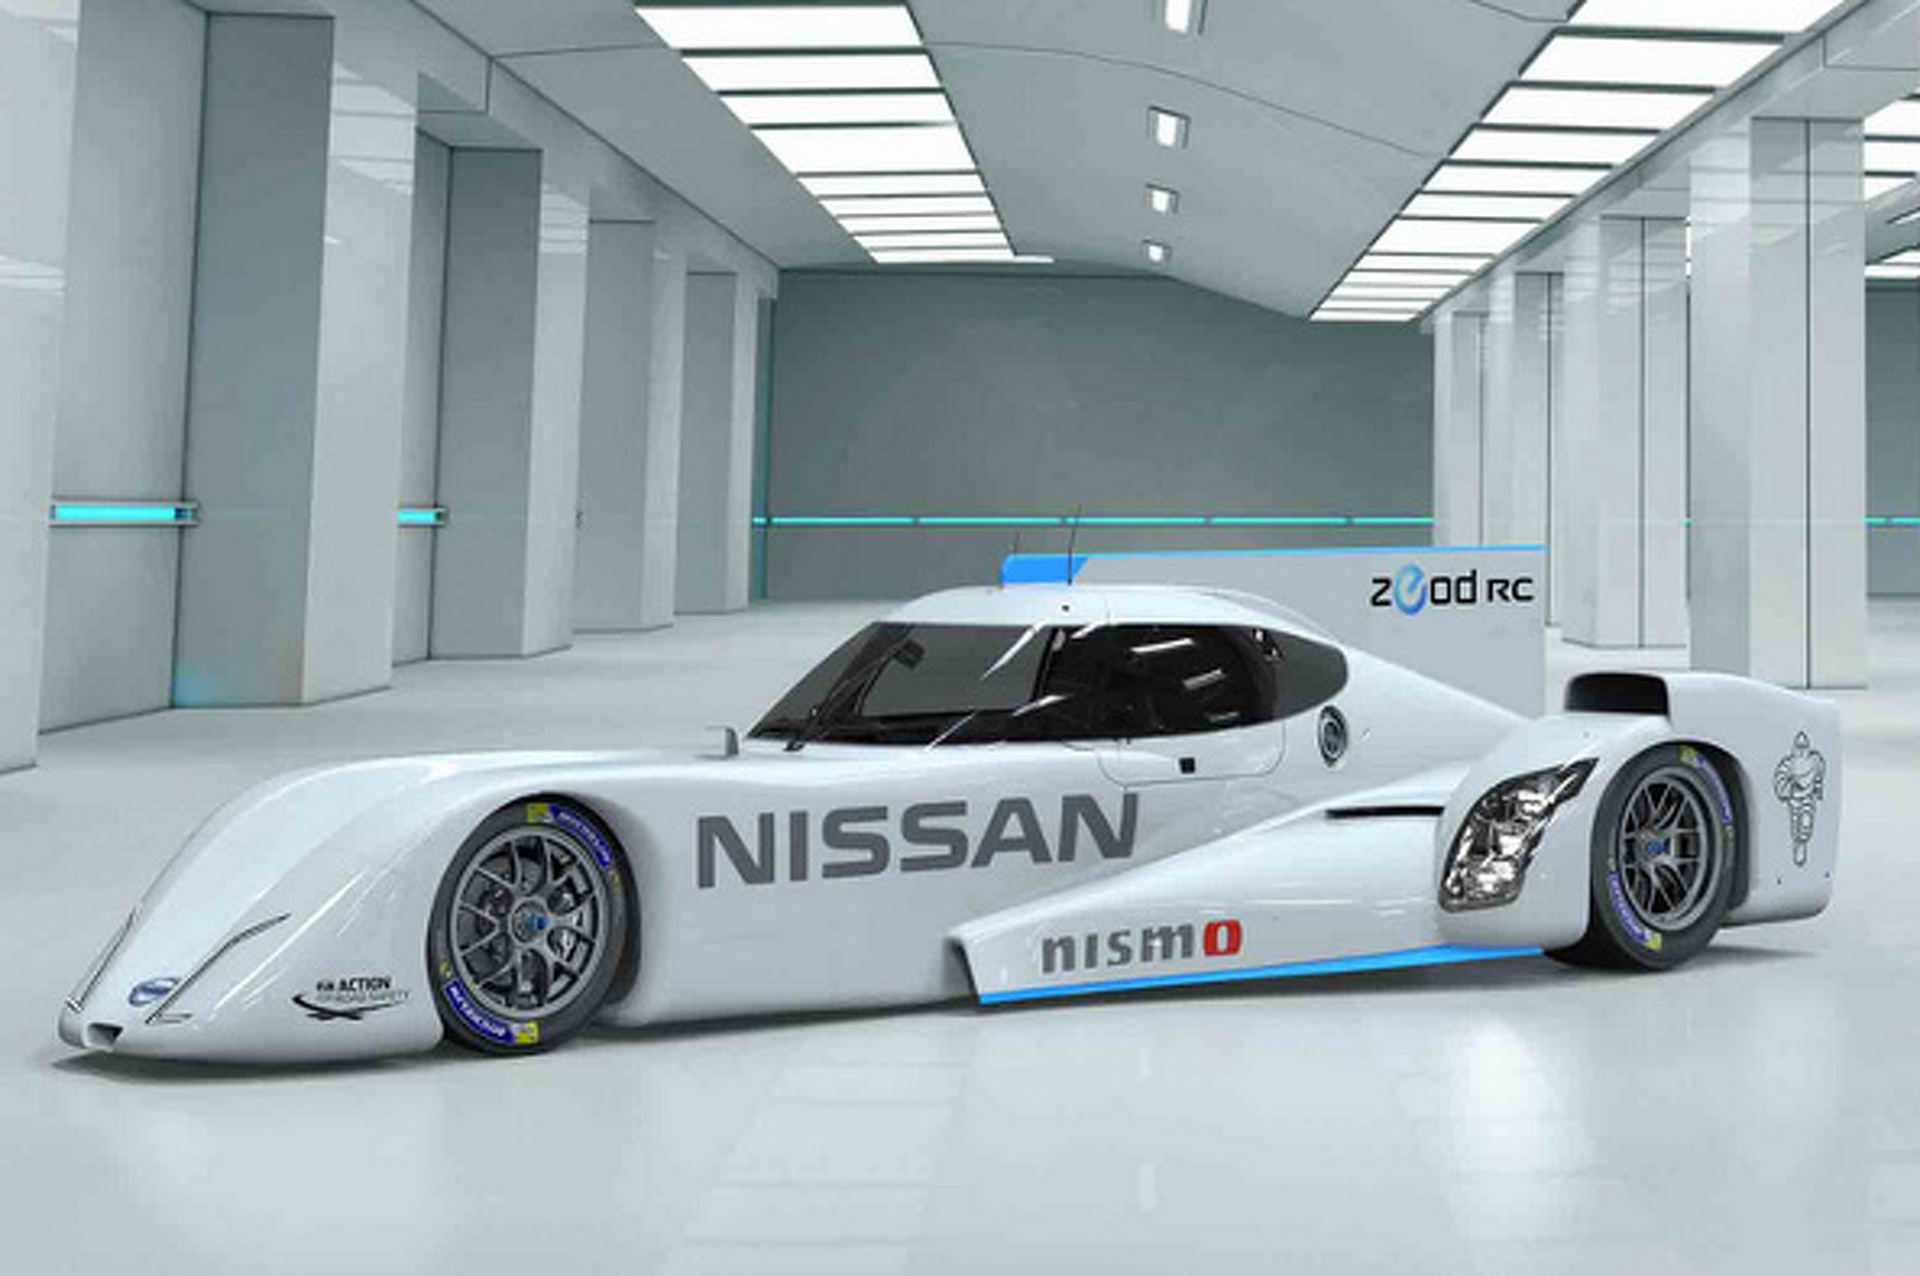 Nissan ZEOD RC Portends Future of Fuel-Efficient Racing?